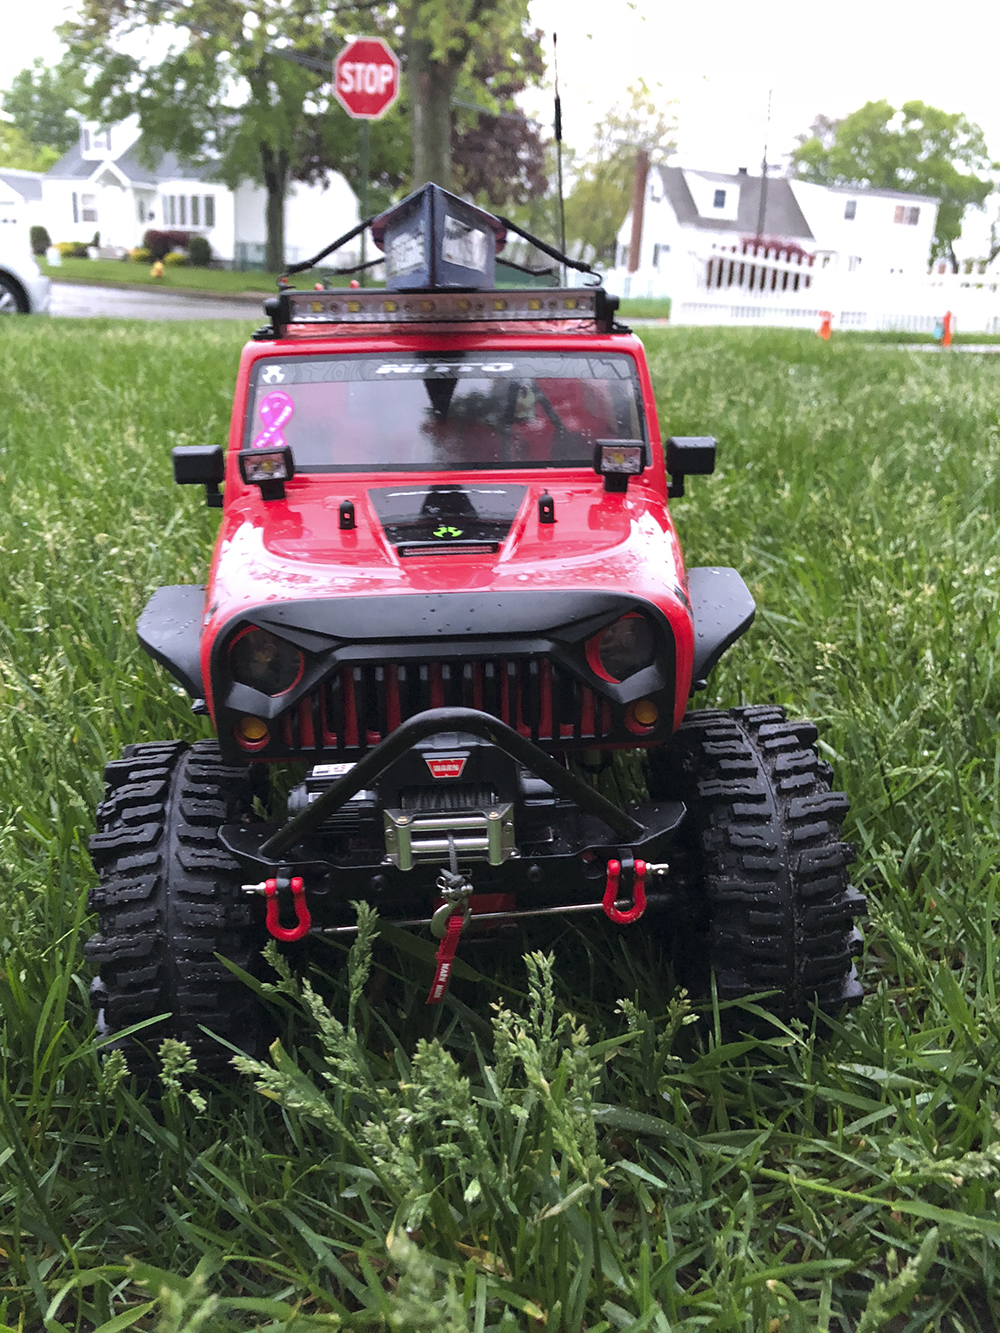 Axial Jeep Beach Bomber [READER'S RIDE]